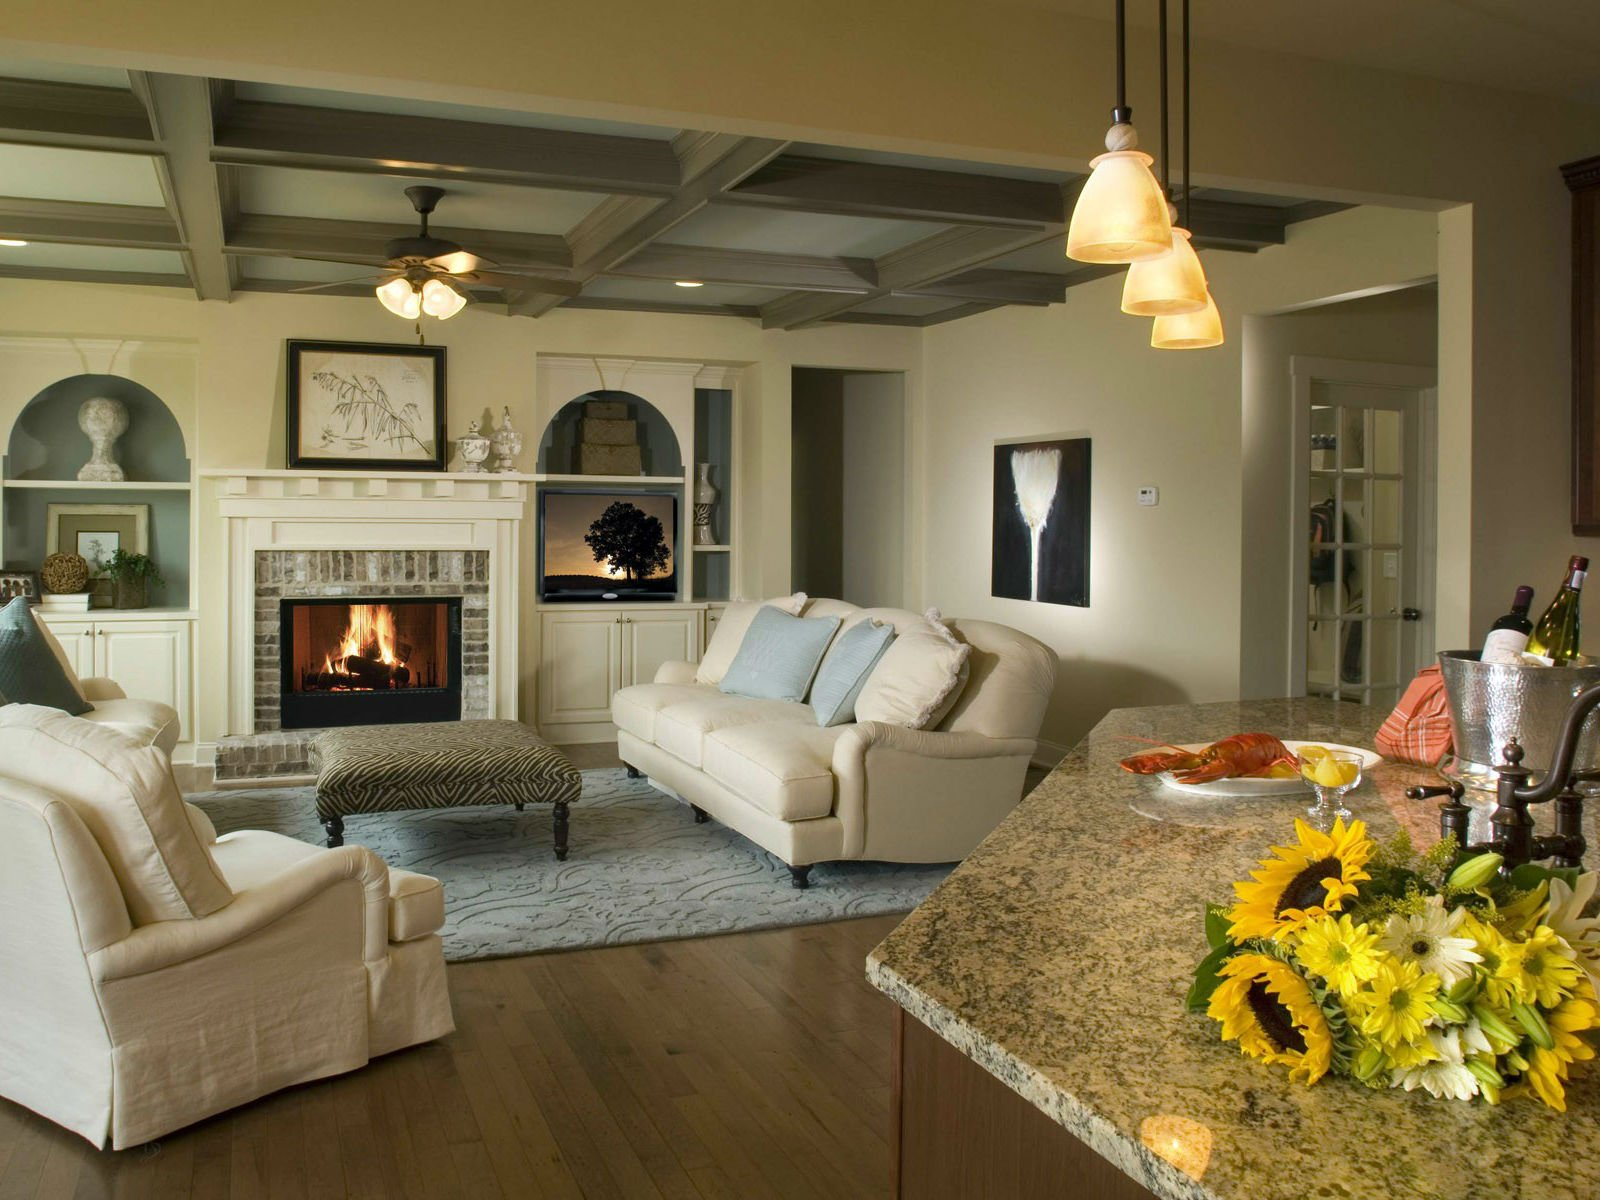 Family Room Ideas – Make Your House Feel Like Home